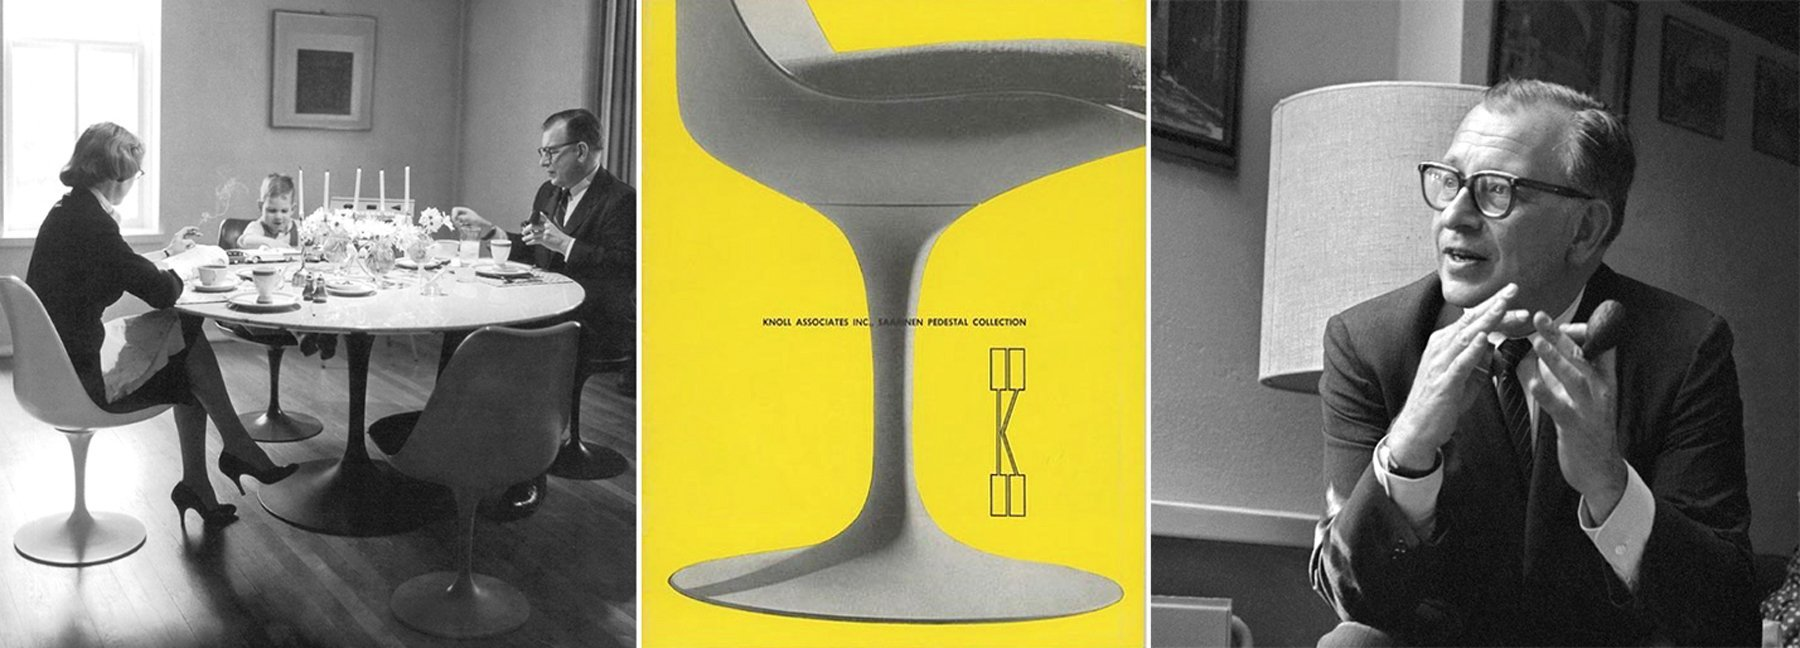 Eero Saarinen - Tulip Collection